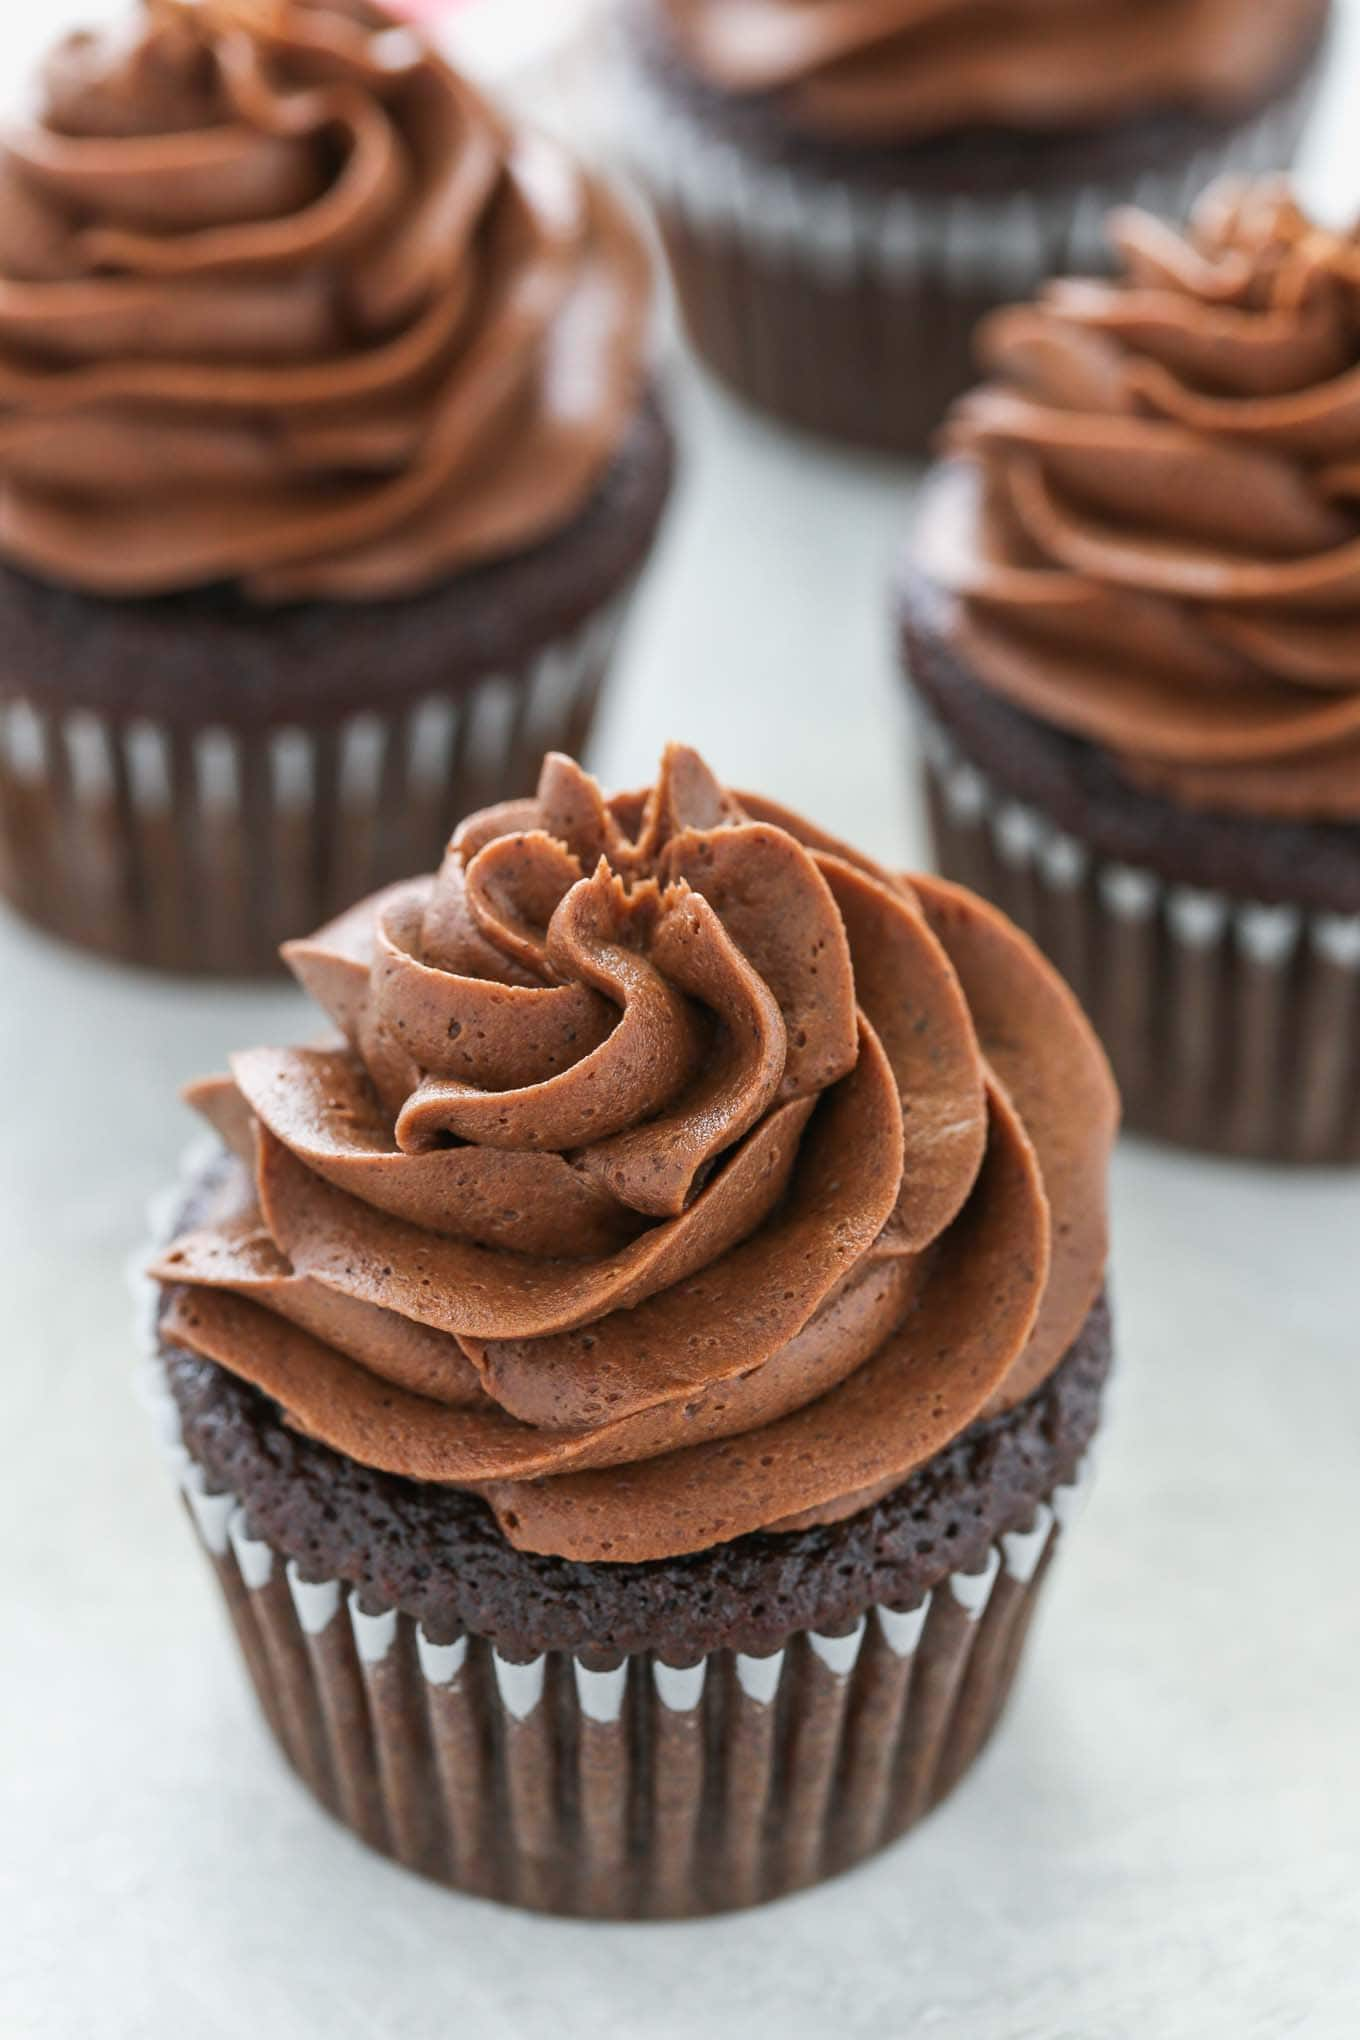 Four chocolate cupcakes topped with homemade chocolate frosting.